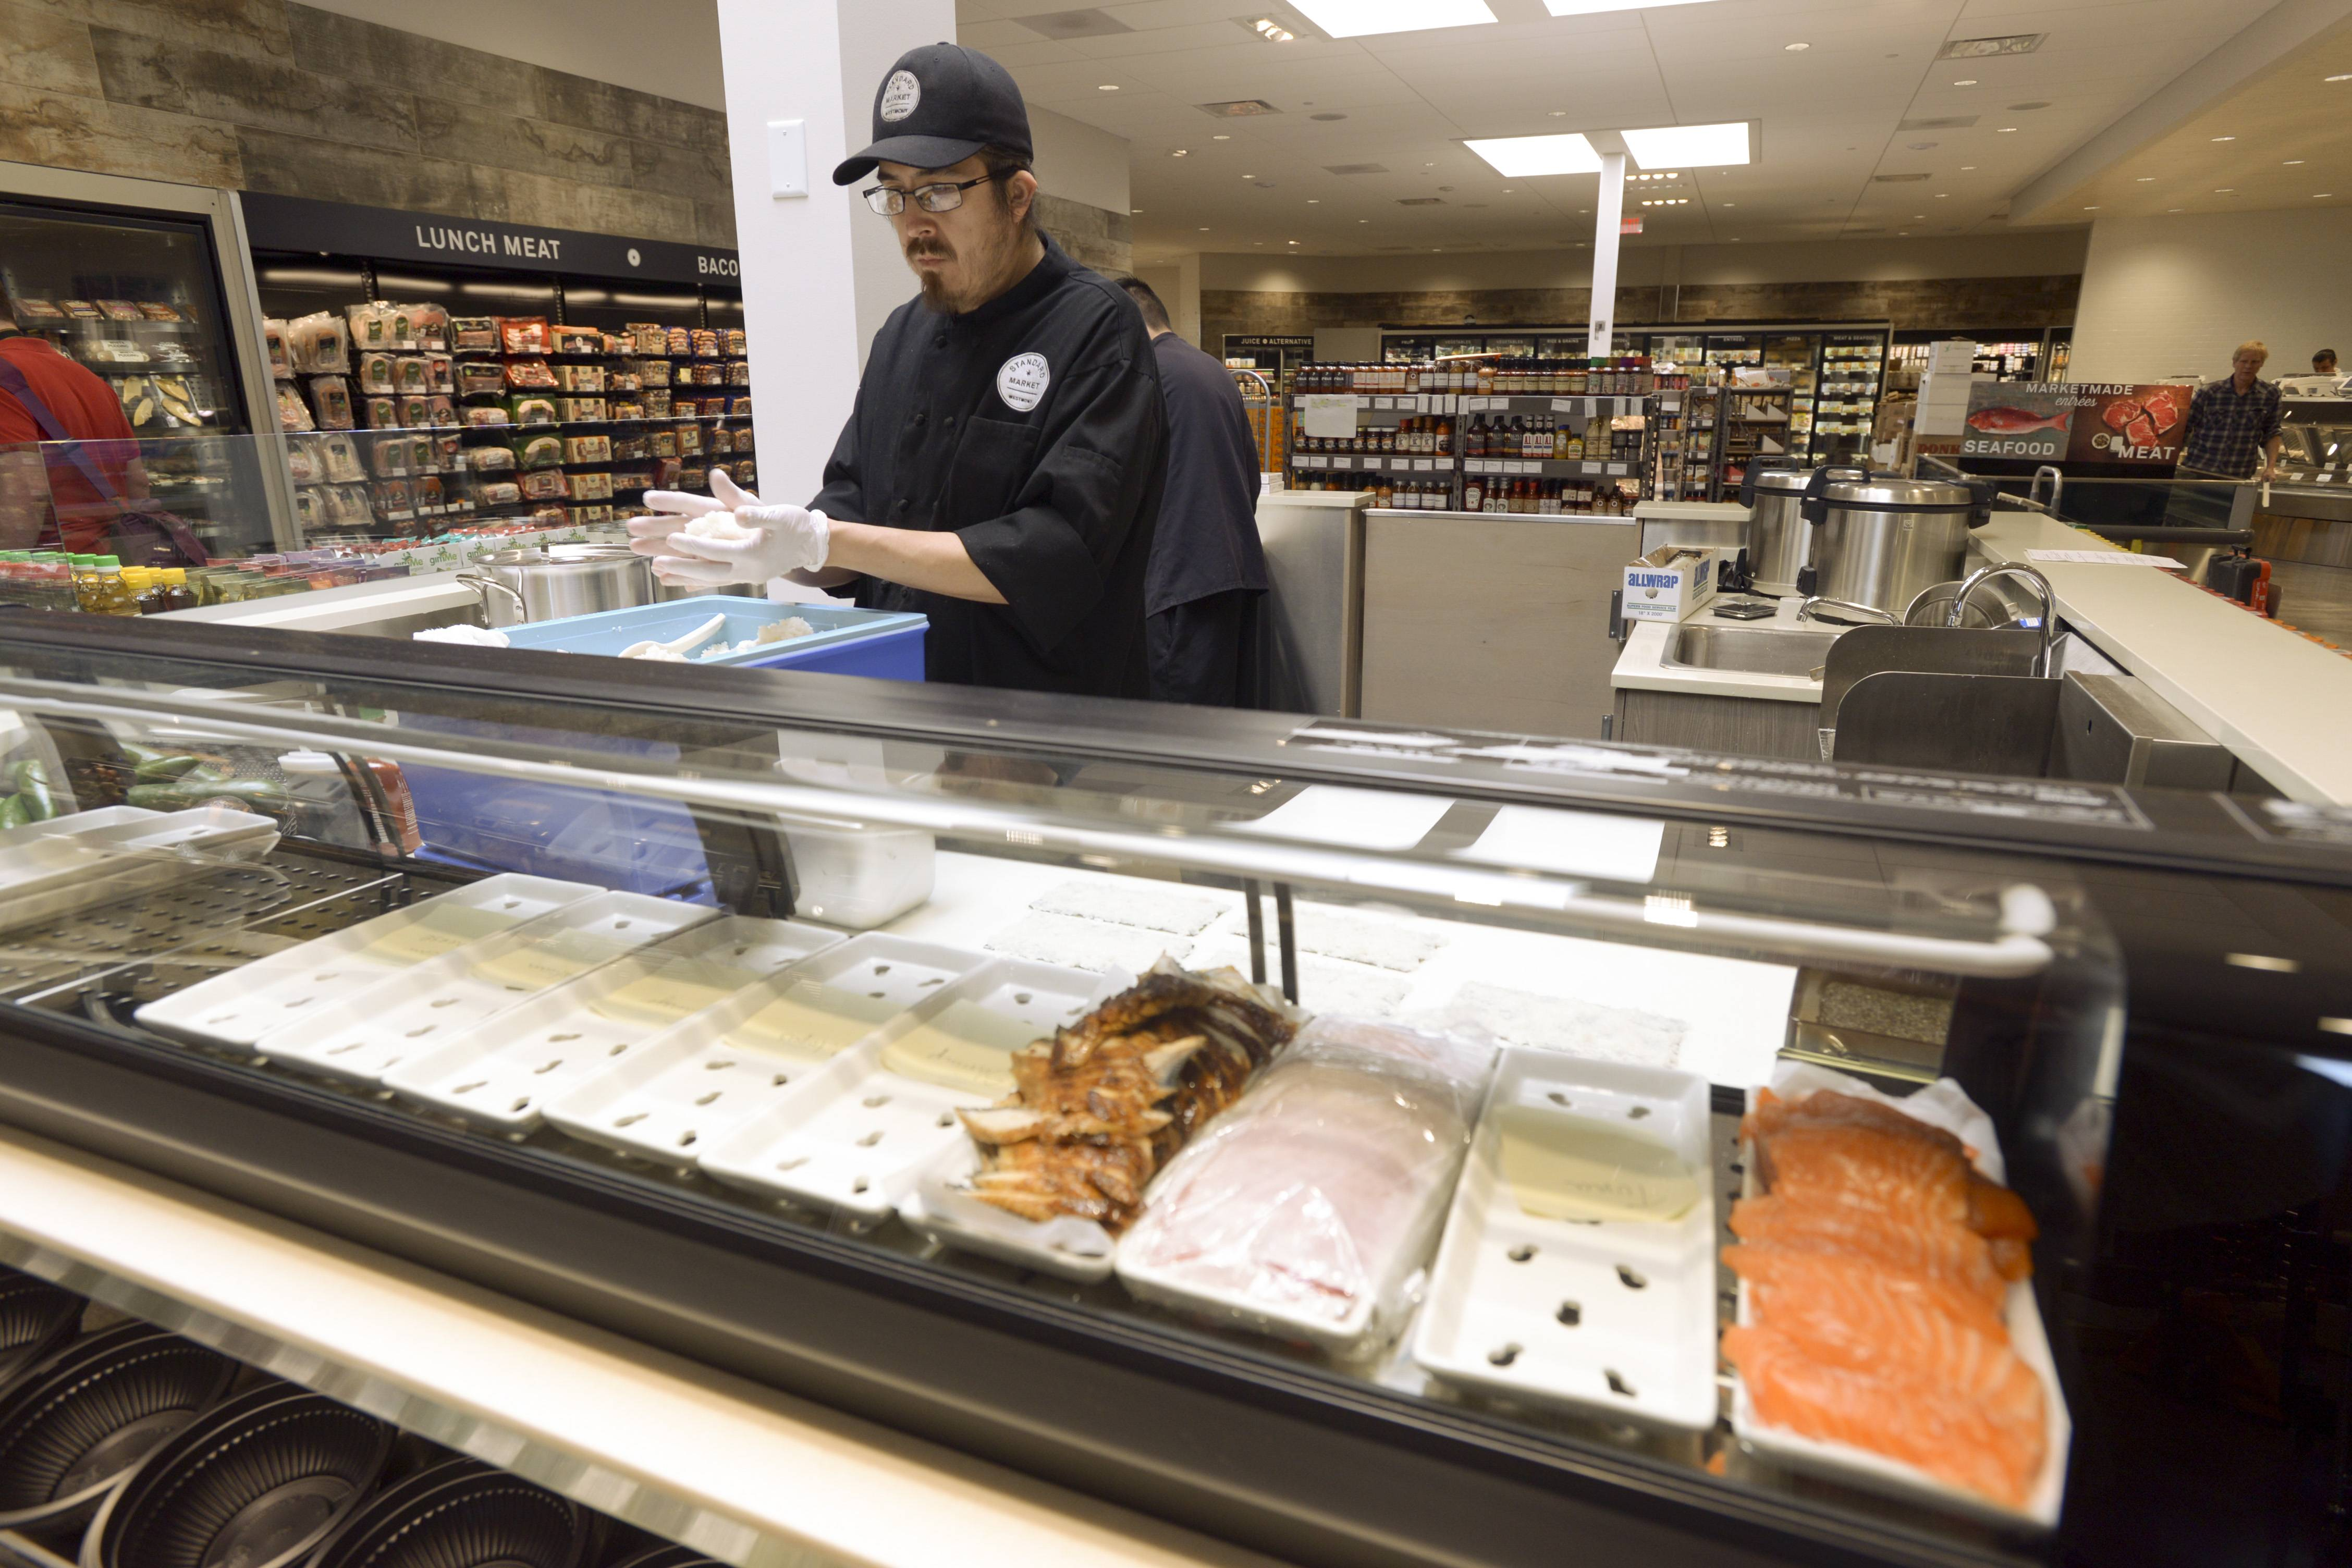 The sushi bar at Standard Market in Naperville will use fresh fish flown in each day.